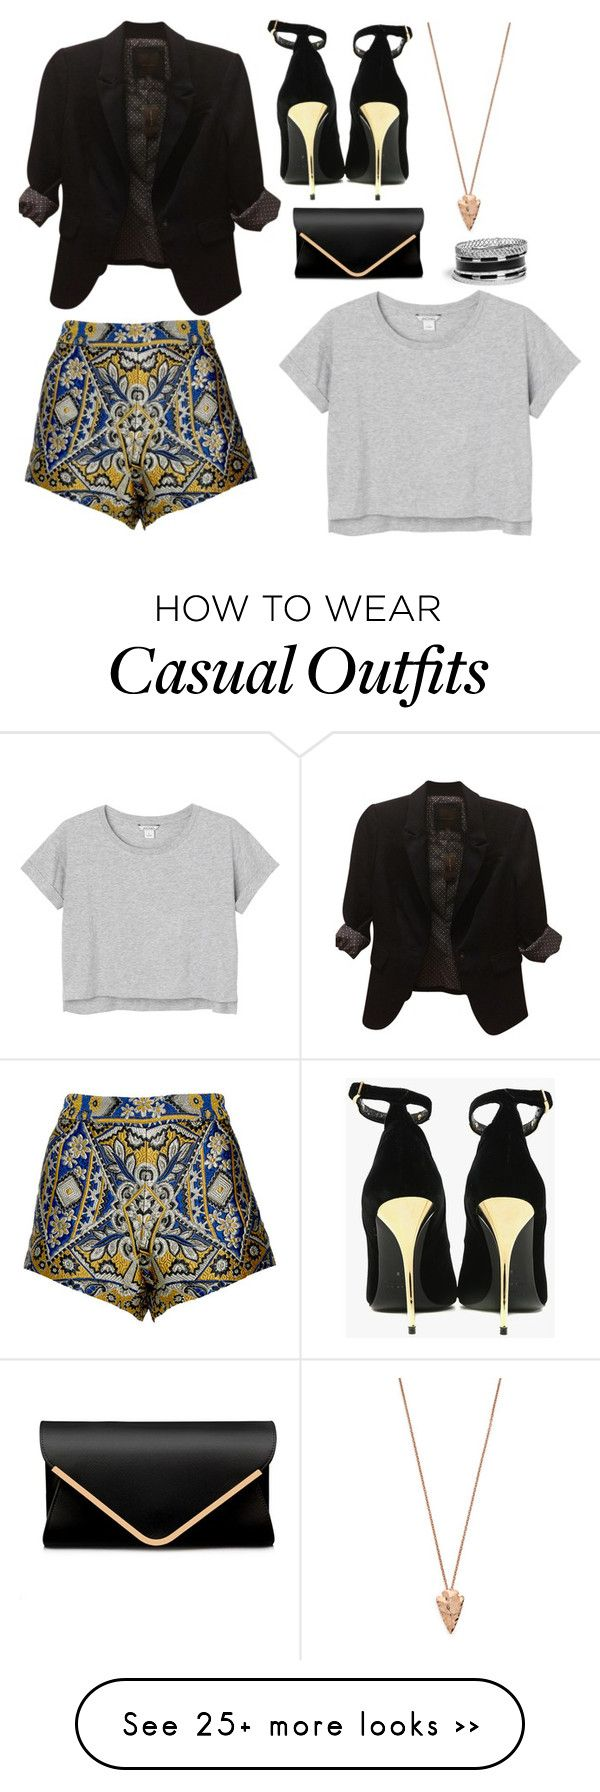 """Casual"" by roxane-murekatete on Polyvore featuring The Limited, Monki, Pamela Love, GUESS and Balmain"